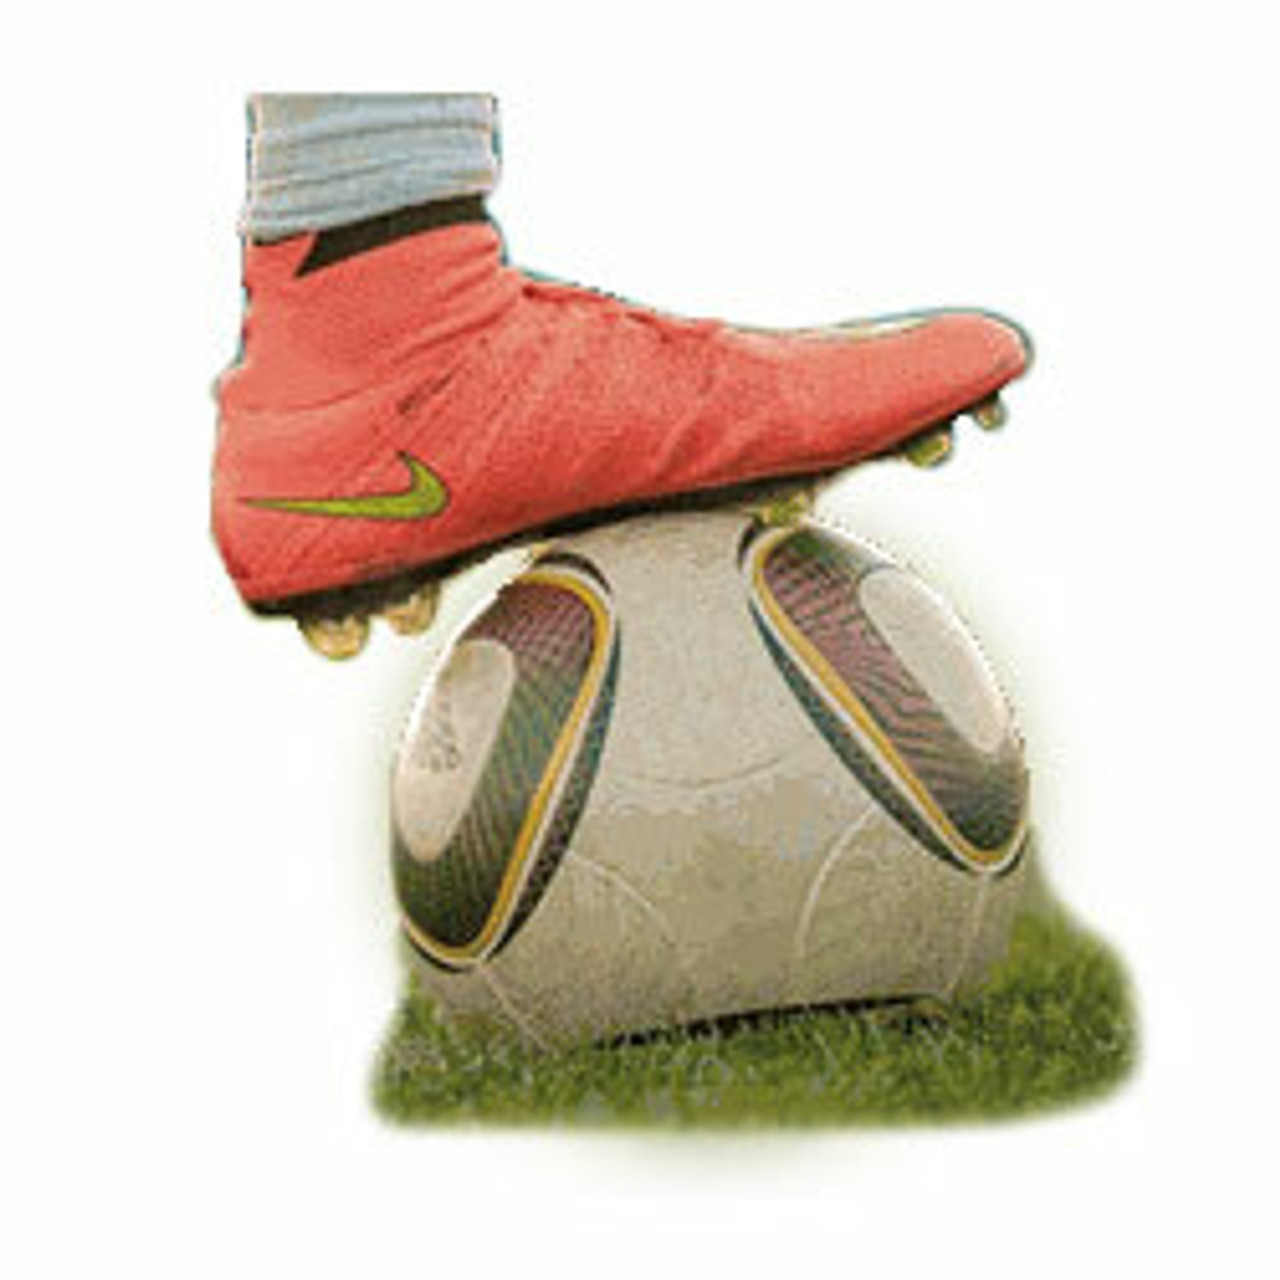 Antifungual Foot Care Products for Athletes Foot